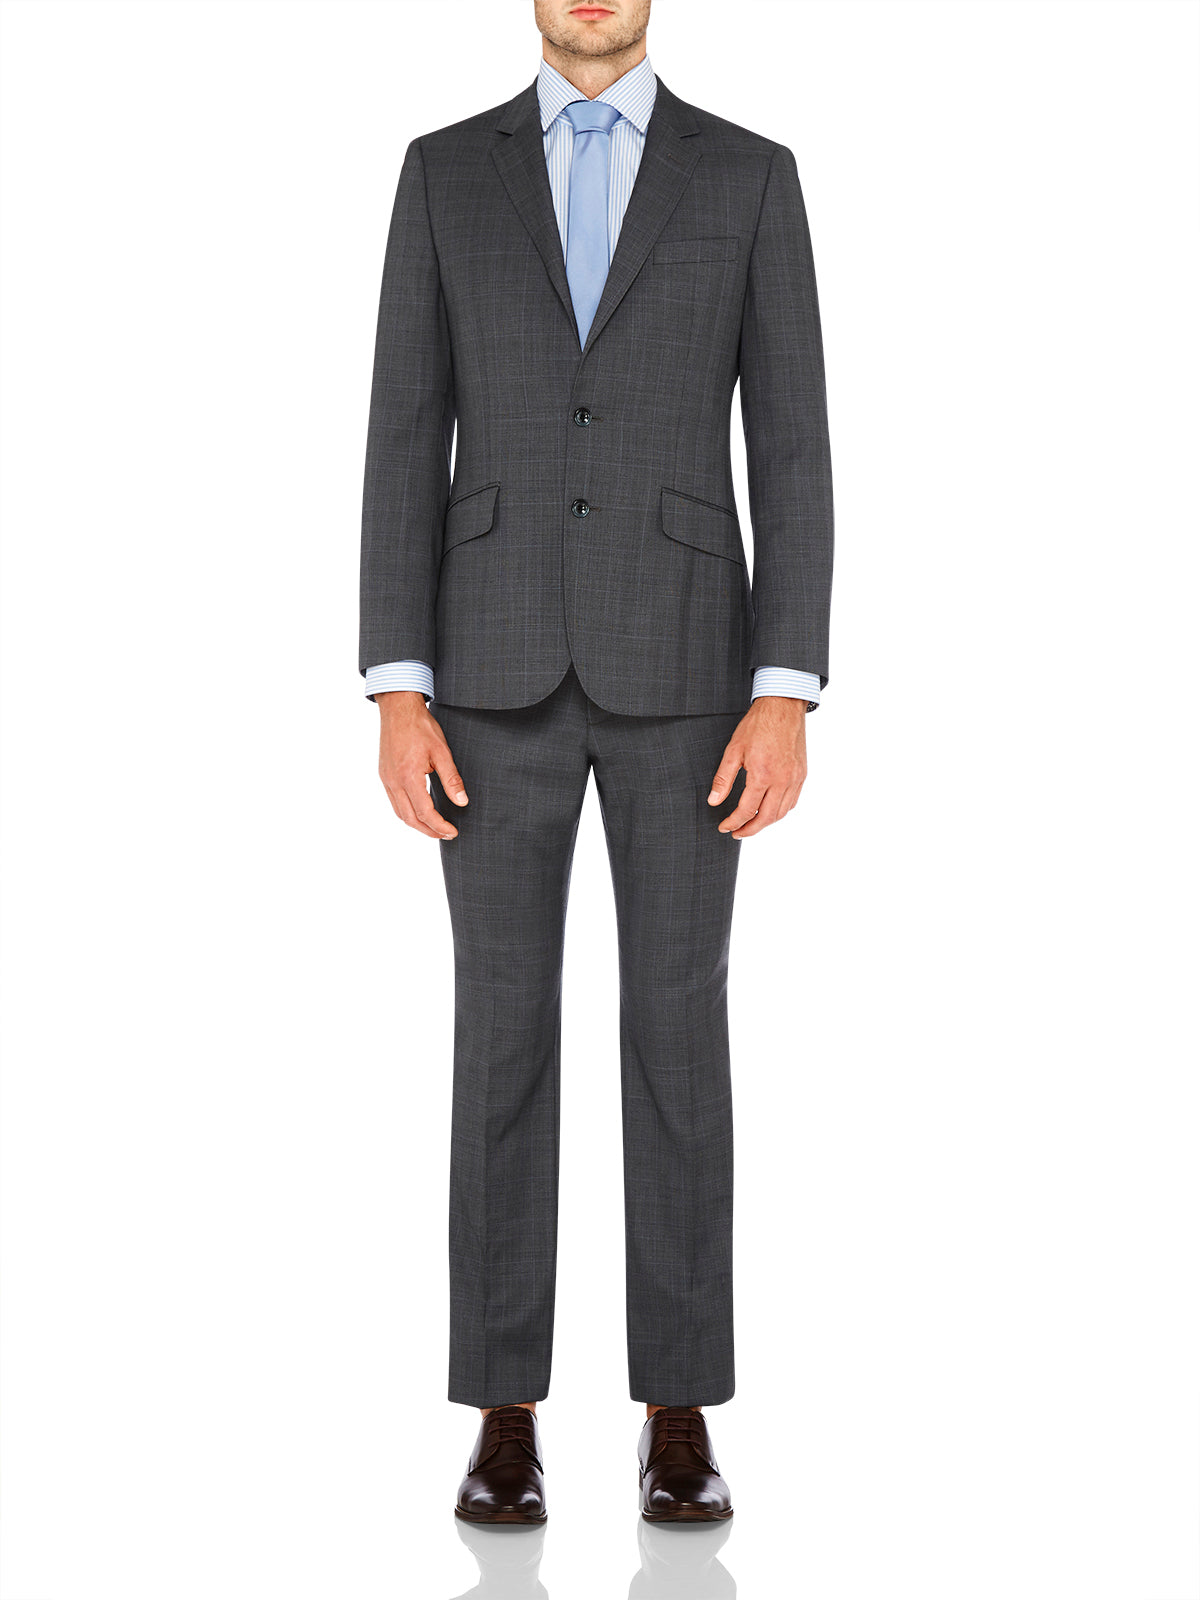 NEW HOPKINS LUX SUIT TROUSERS GRYX